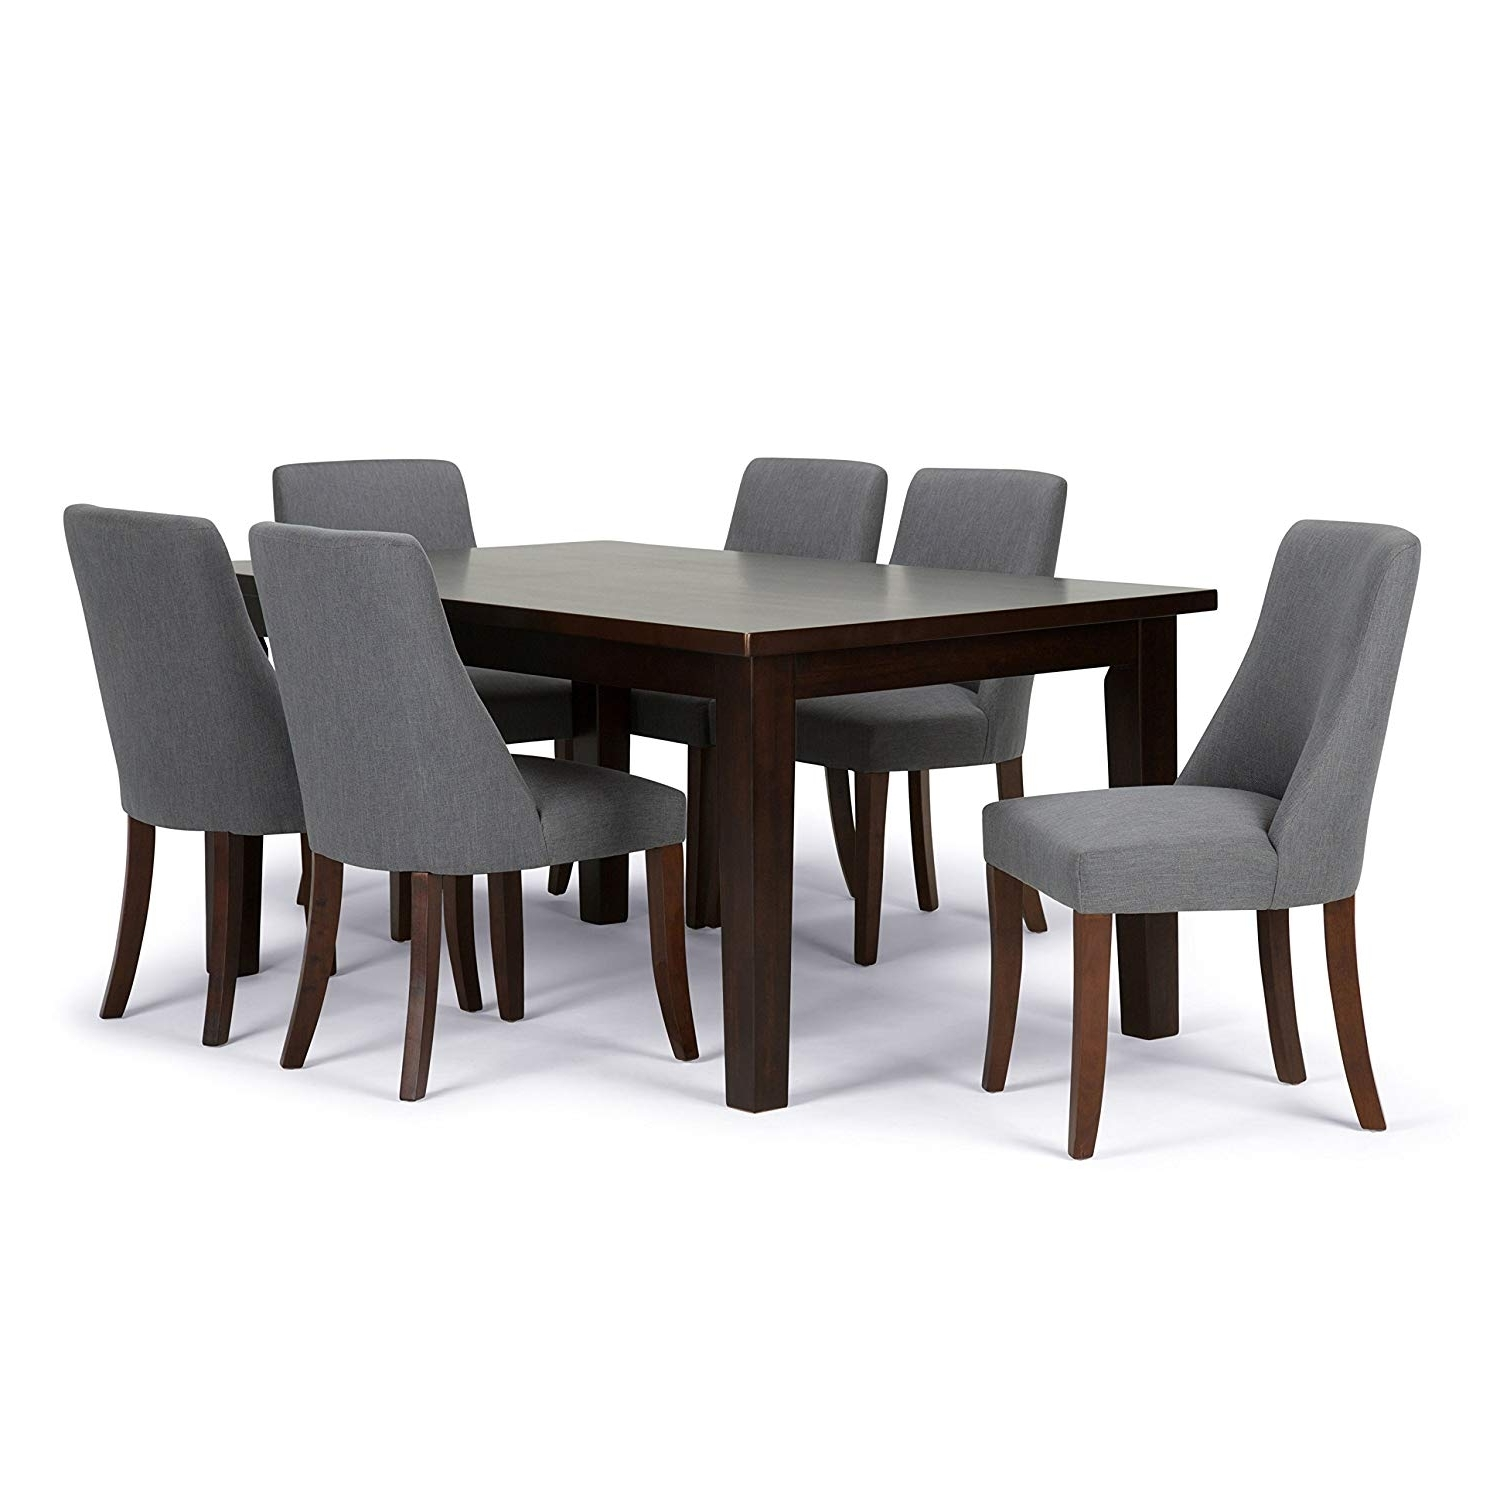 Walden Extension Dining Tables Pertaining To Most Recent Amazon: Simpli Home Walden 9 Piece Dining Set, Stone Grey (View 18 of 25)